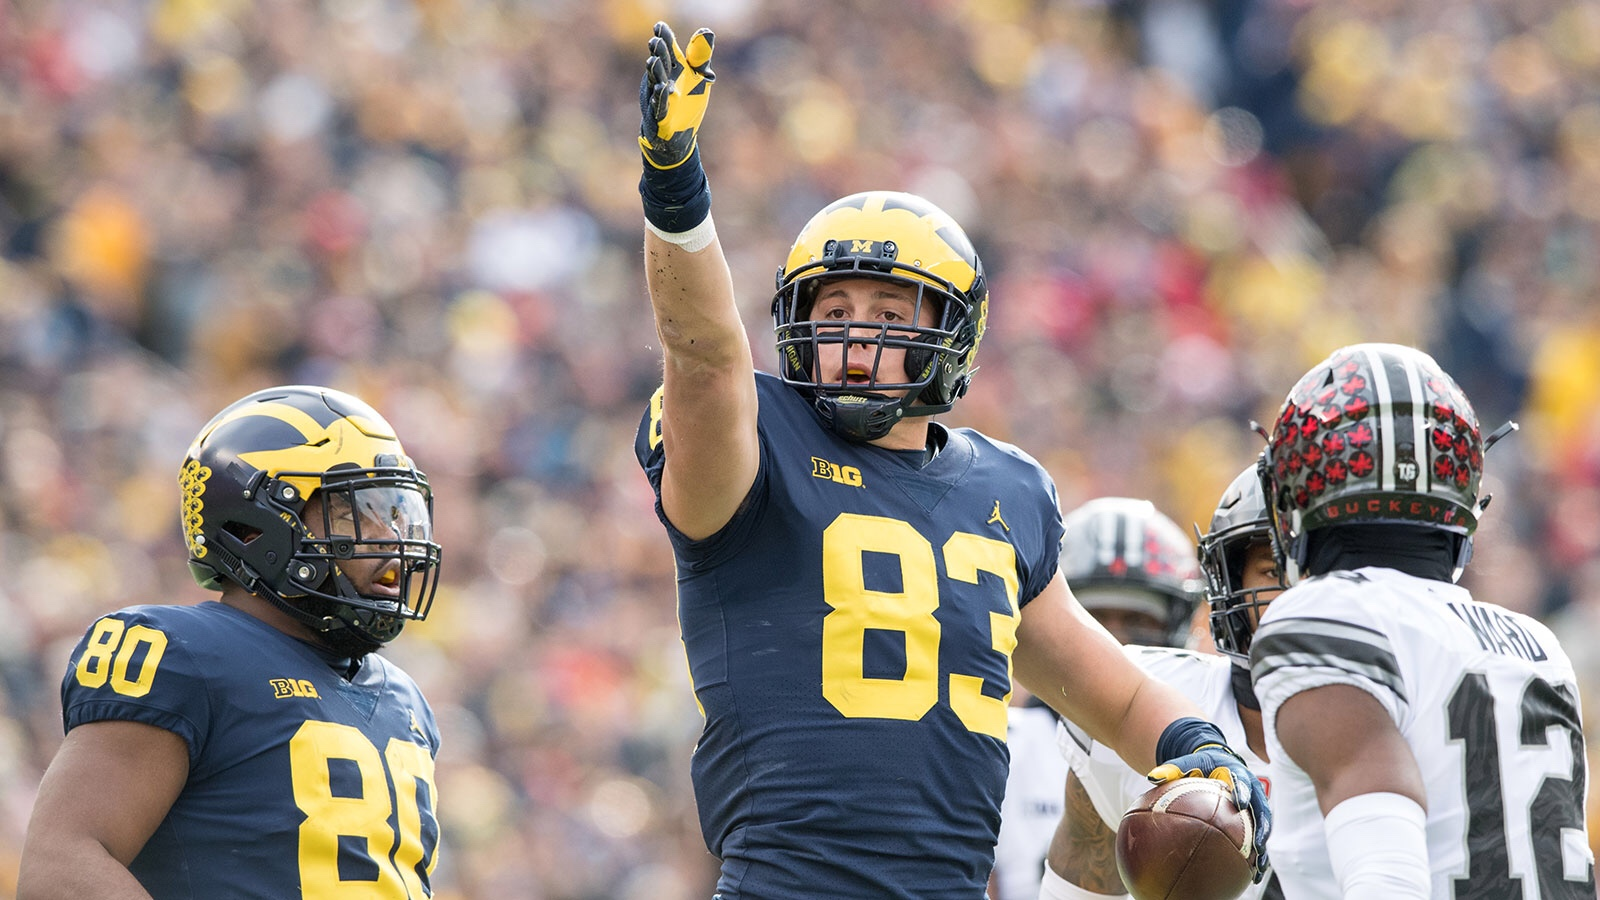 CUMBLETON'S CONCLUSIONS – Pittsburgh Steelers Draft